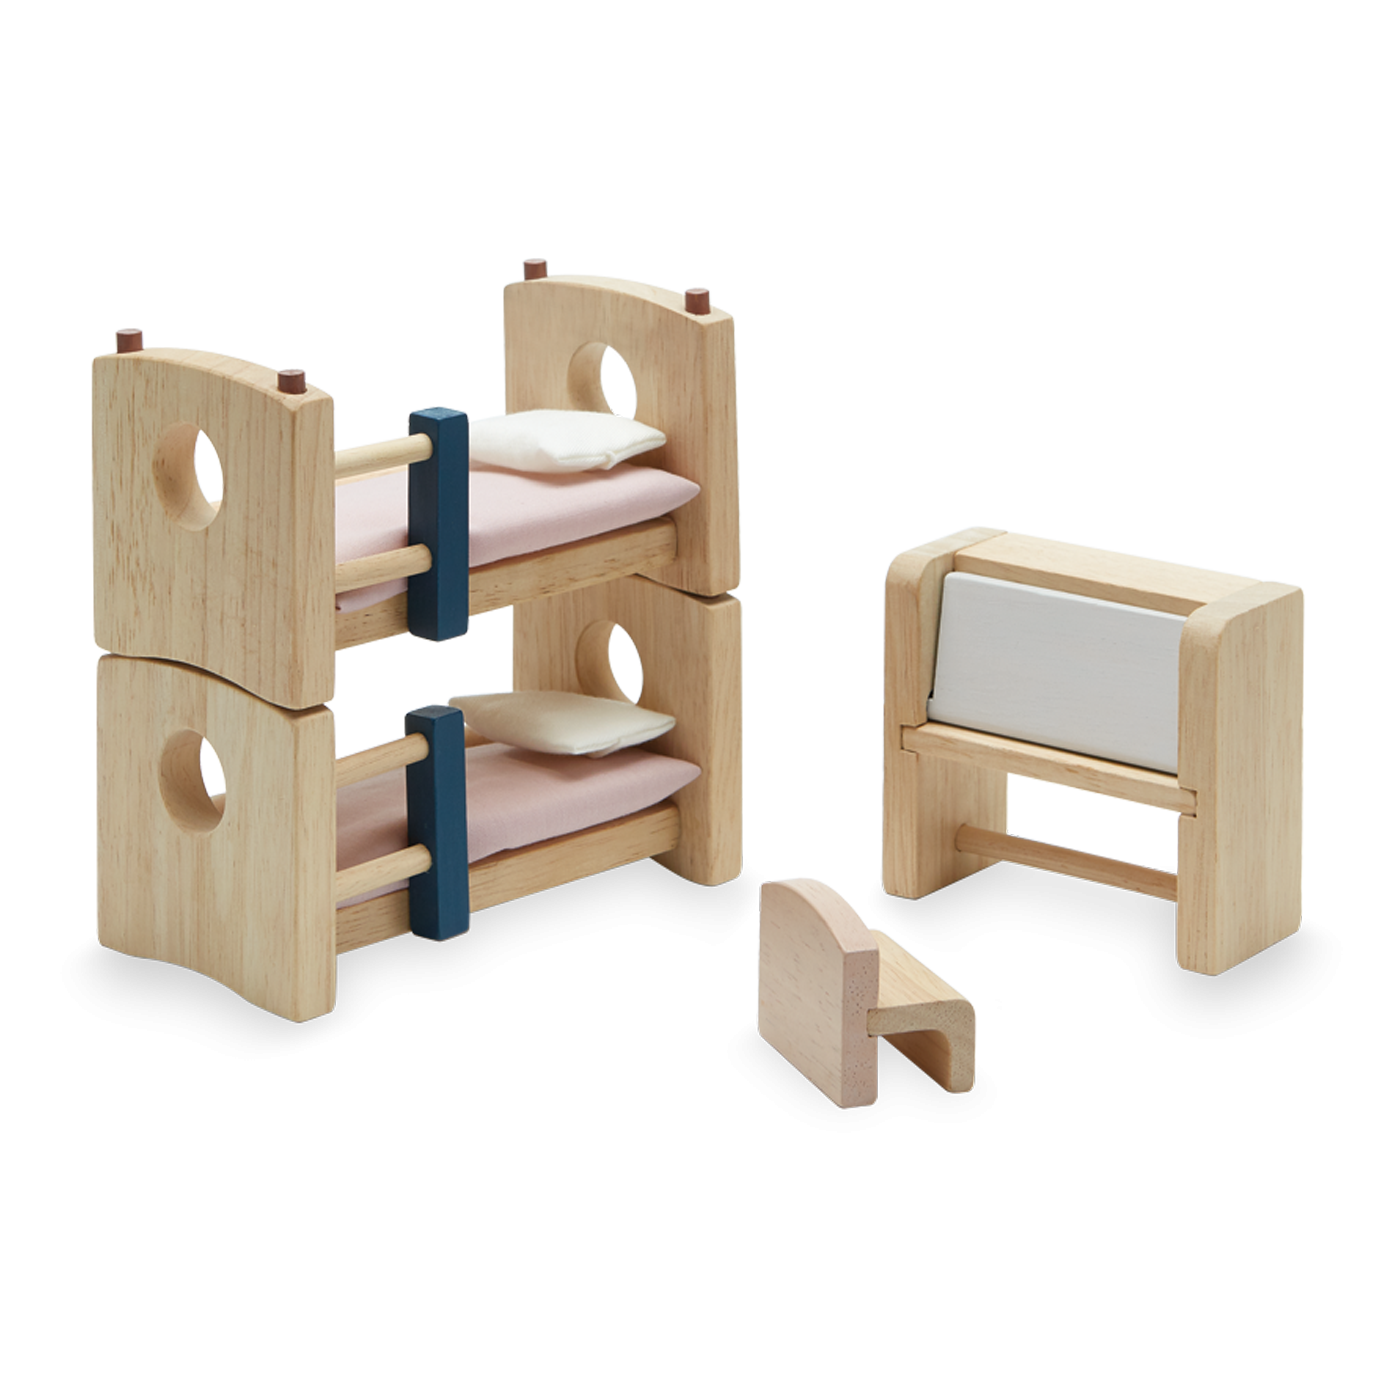 7353_PlanToys_Children's_room_-_Orchard_Pretend_Play_3yrs_Emotion_Language_and_Communications_Imagination_Social_Coordination_Creative_Wooden_toys_Education_toys_Safety_Toys_Non-toxic_0.png